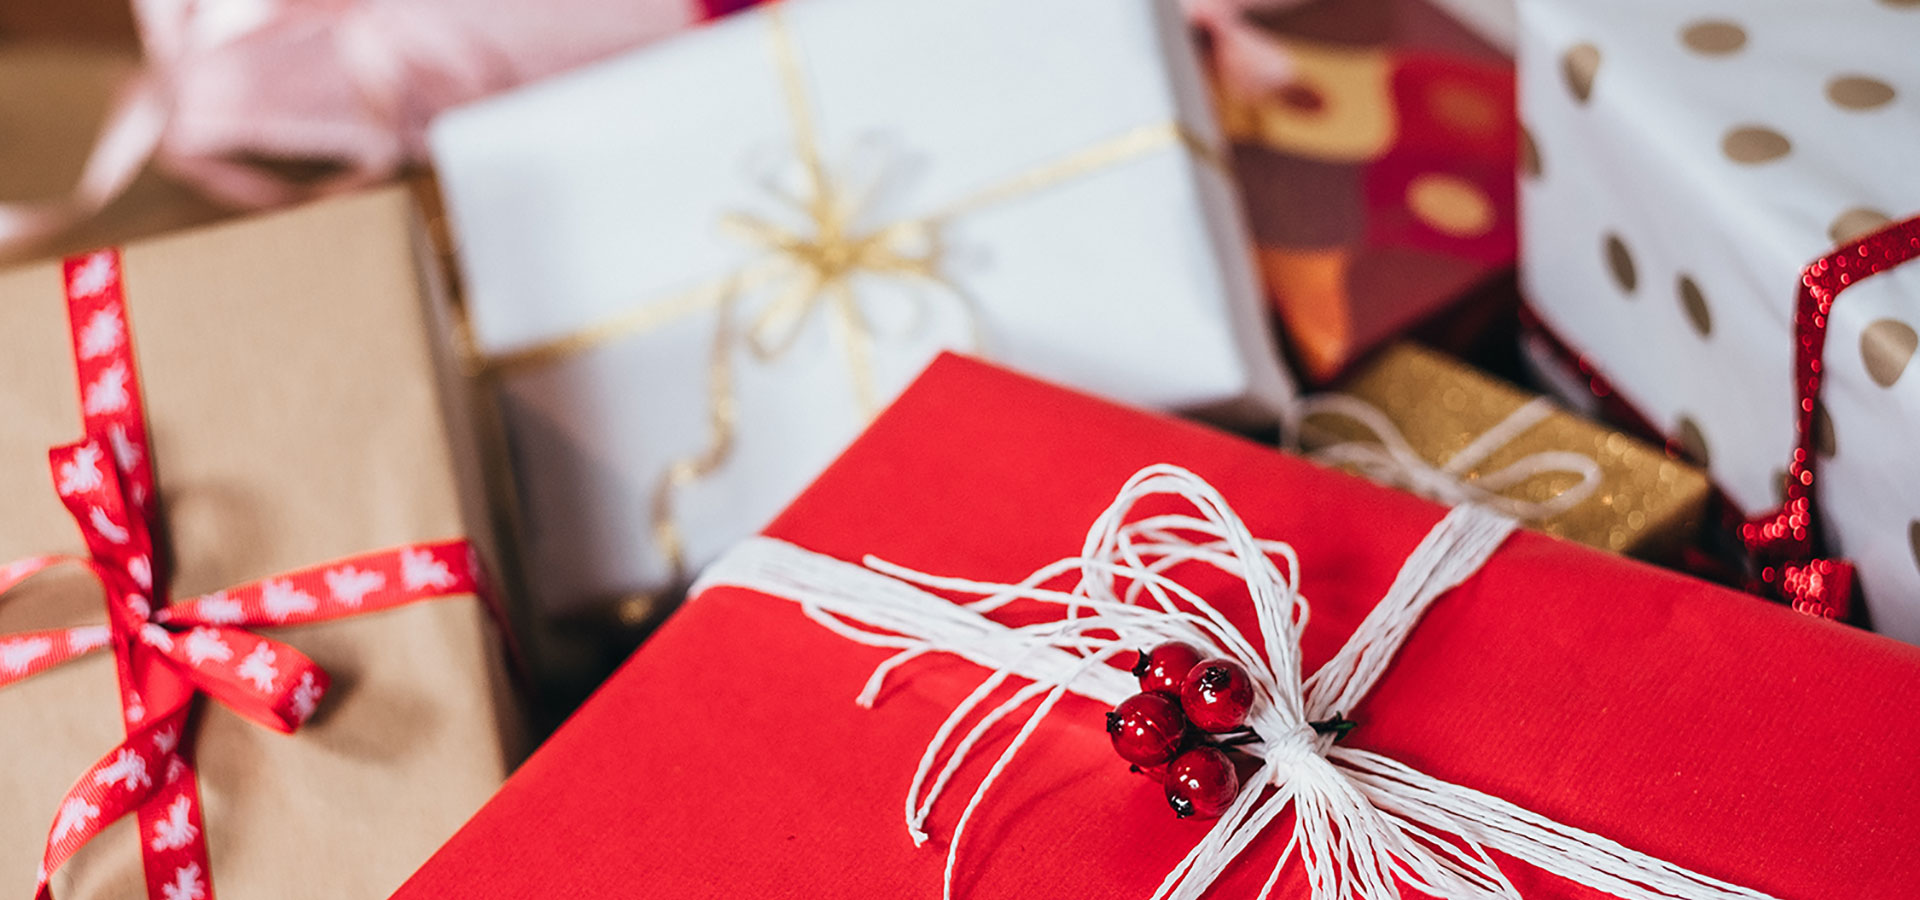 Christmas Business Gifts.Christmas Business Gifts You Ve Got This Asda For